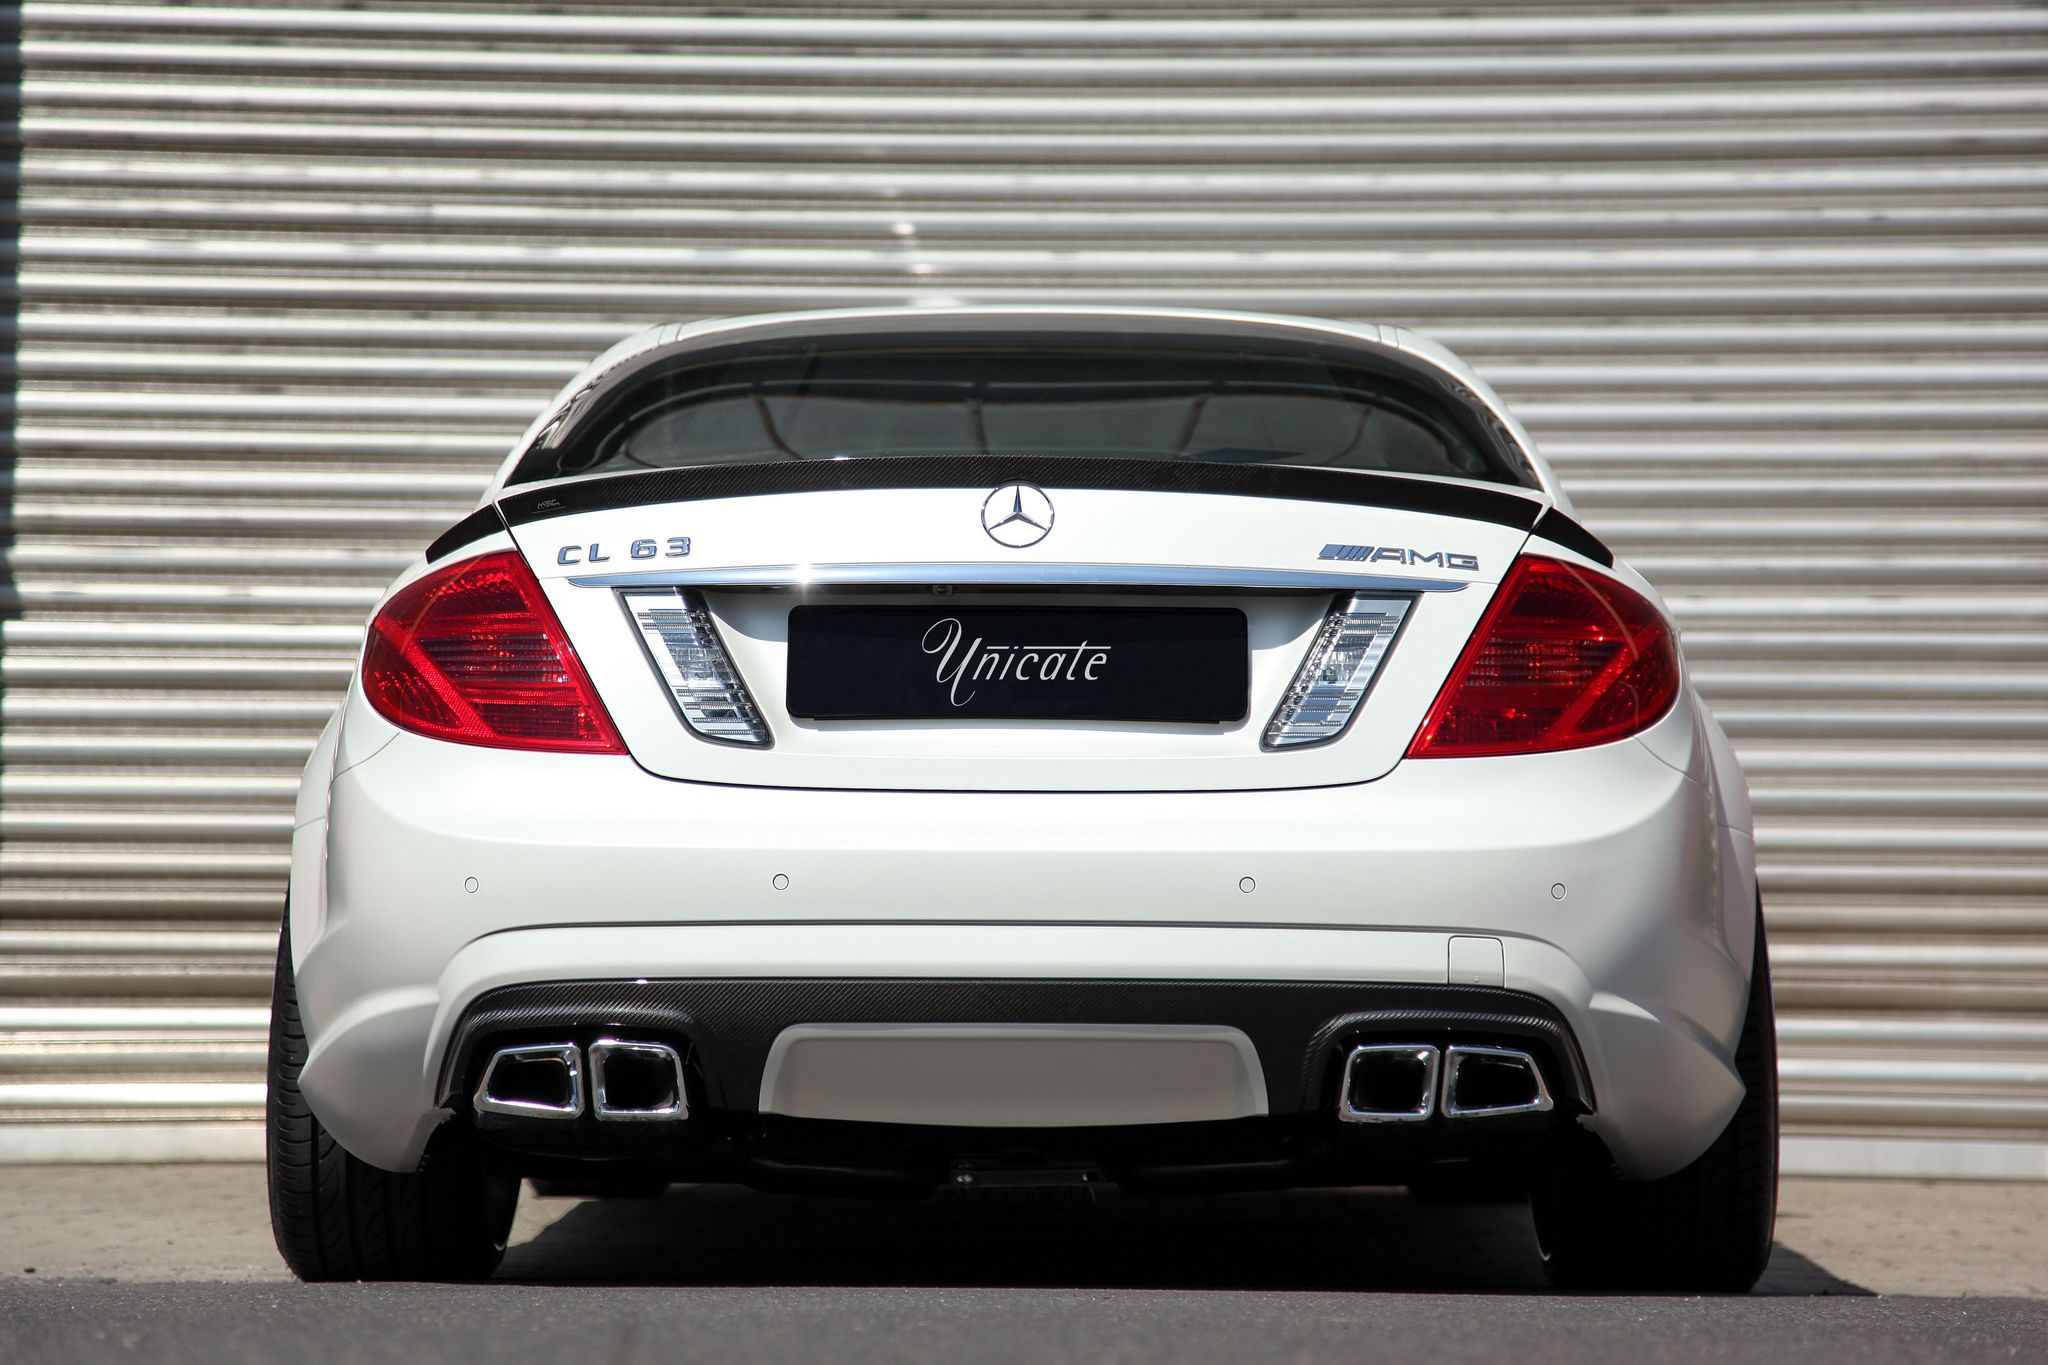 unicate-mercedes-CL63-AMG-2